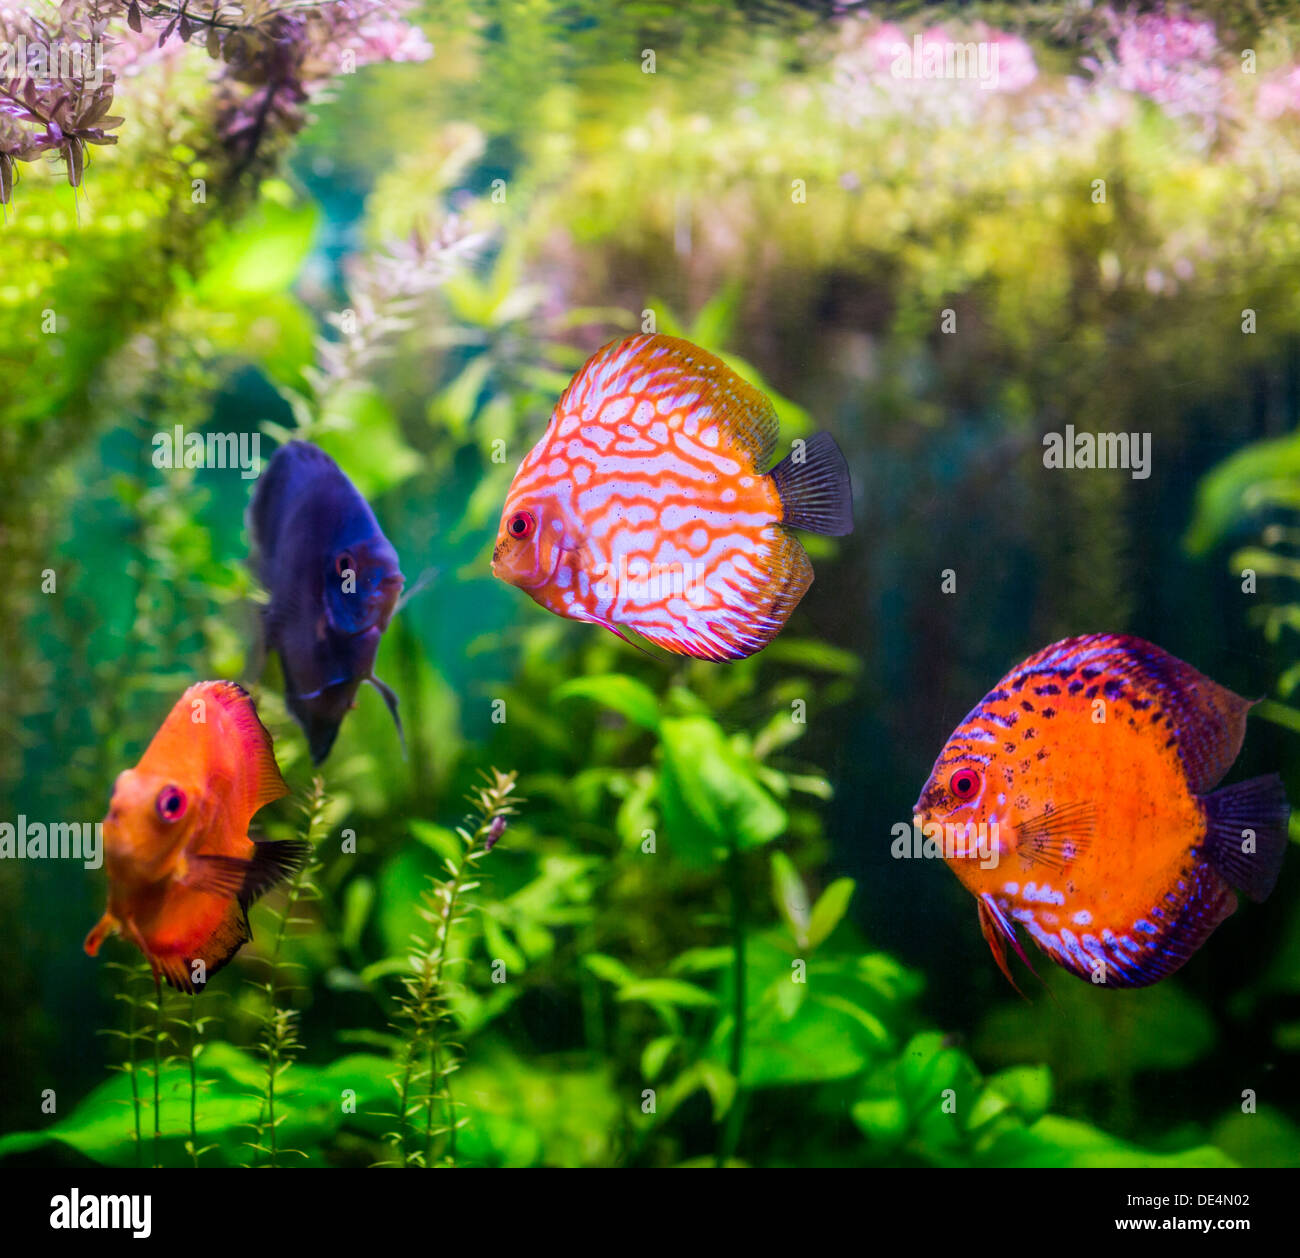 Symphysodon discus in an aquarium on a green background Stock Photo